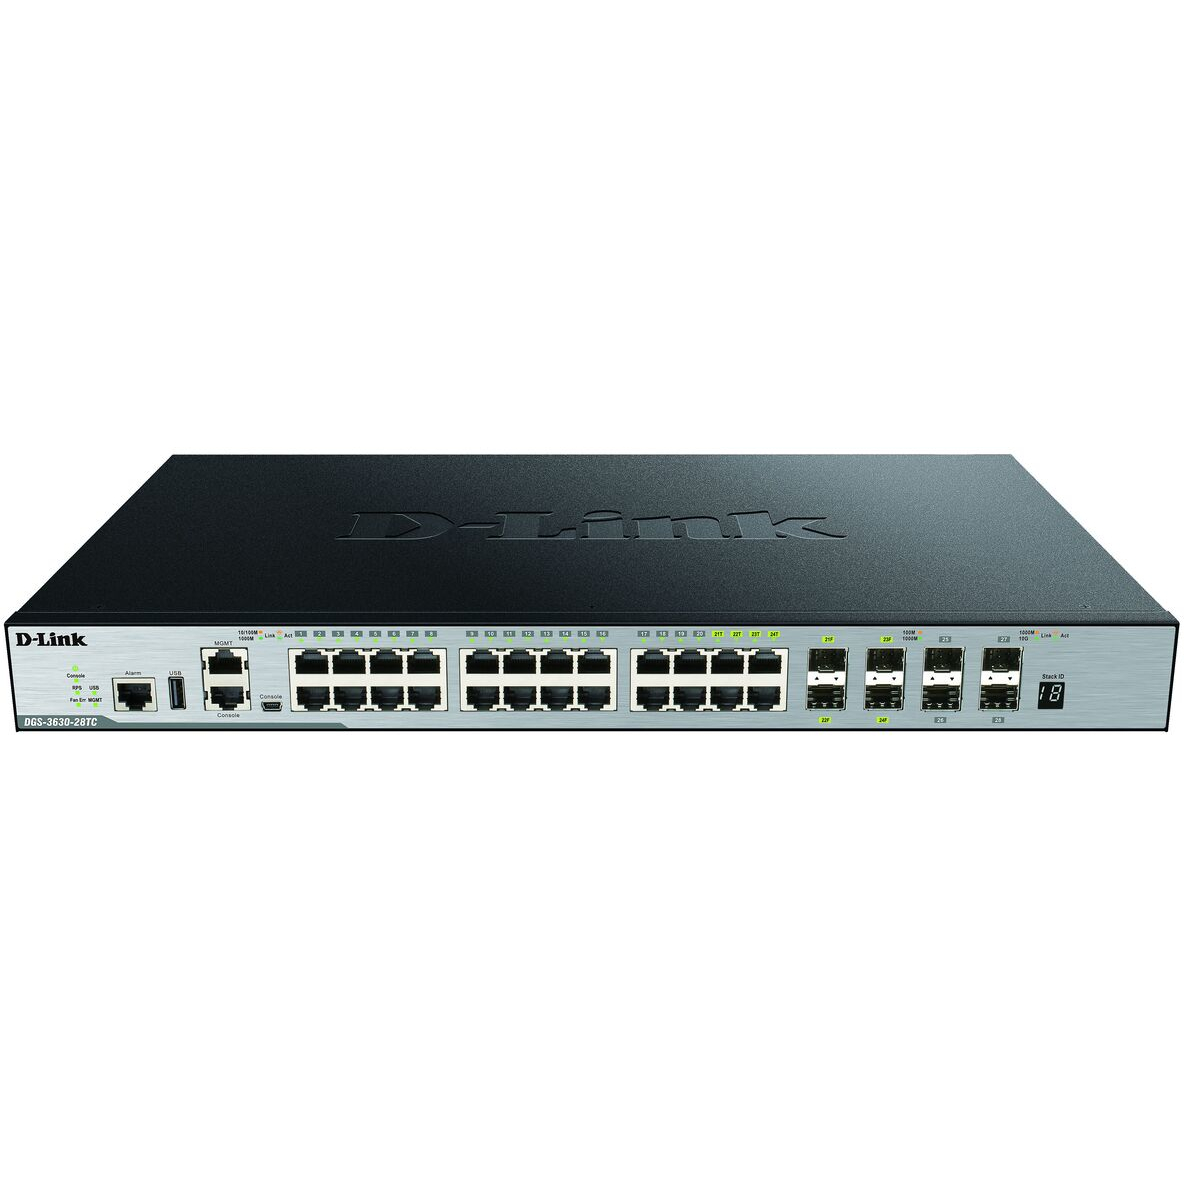 D-Link DGS-3630-28TC/SI 28-Port Layer 3 Gigabit Stack Switch